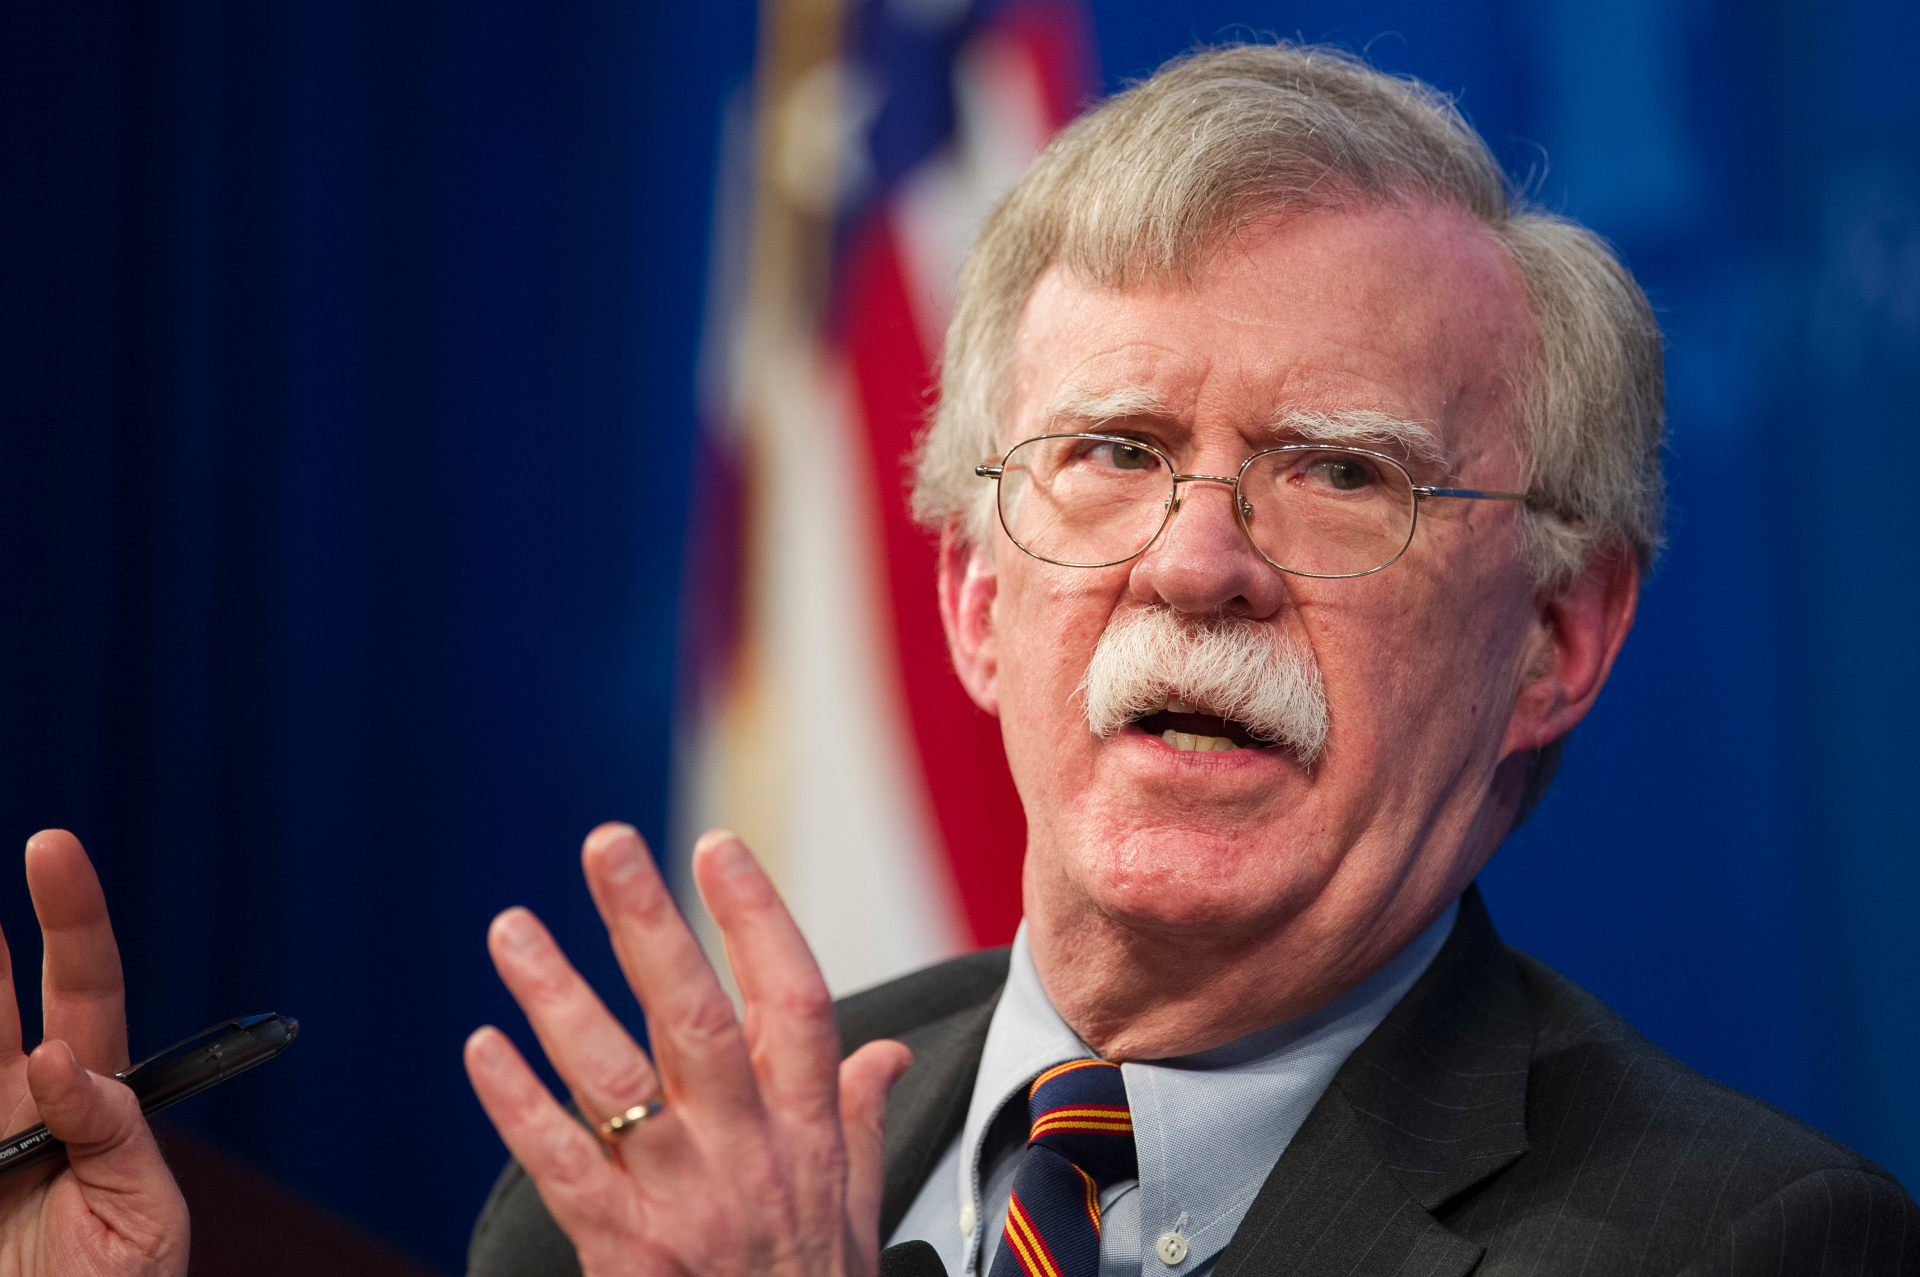 Read: John Bolton's full resignation letter to President Trump